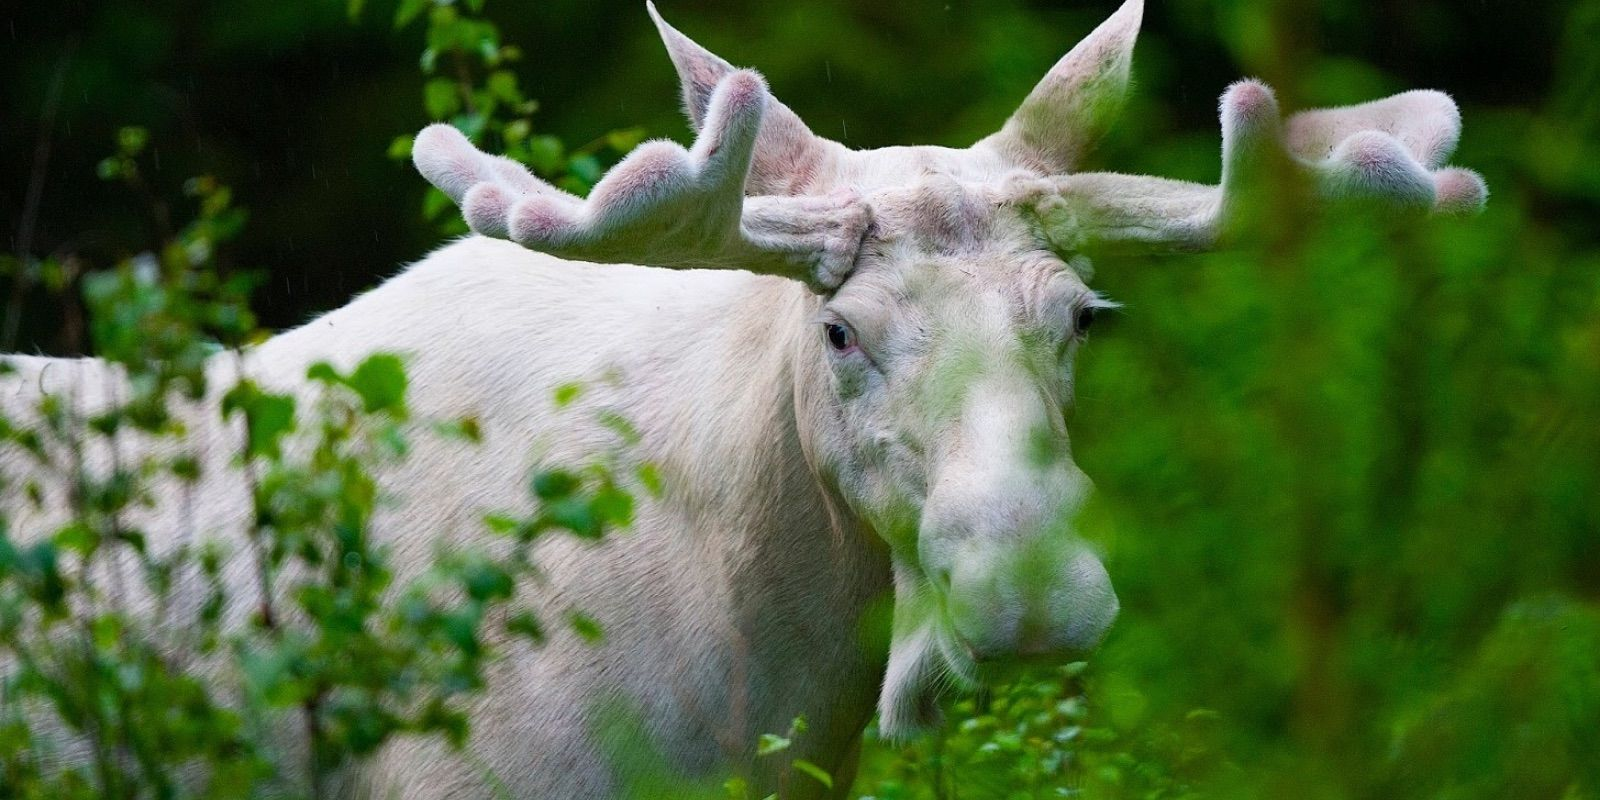 Very rare white moose poached in Ontario